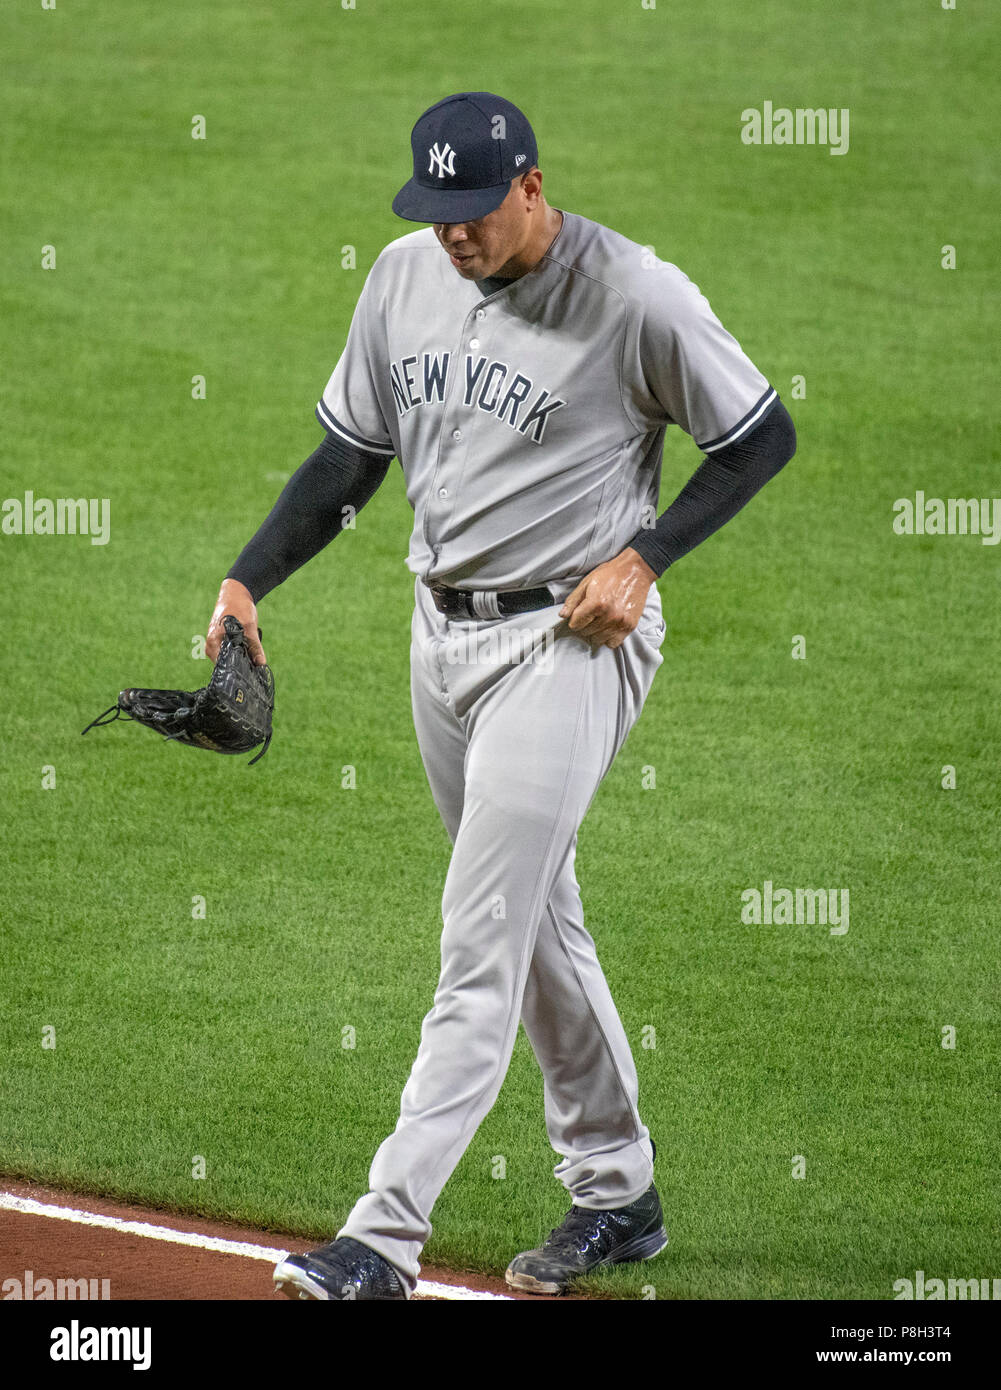 Baltimore, United States Of America. 10th July, 2018. New York Yankees relief pitcher Dellin Betances (68) walks off the field after giving up a walk-off game-winning single to Baltimore Orioles second baseman Jonathan Schoop in the ninth inning at Oriole Park at Camden Yards in Baltimore, MD on Tuesday, July 10, 2018. The Orioles won the game 6 - 5. Credit: Ron Sachs/CNP (RESTRICTION: NO New York or New Jersey Newspapers or newspapers within a 75 mile radius of New York City) | usage worldwide Credit: dpa/Alamy Live News Stock Photo